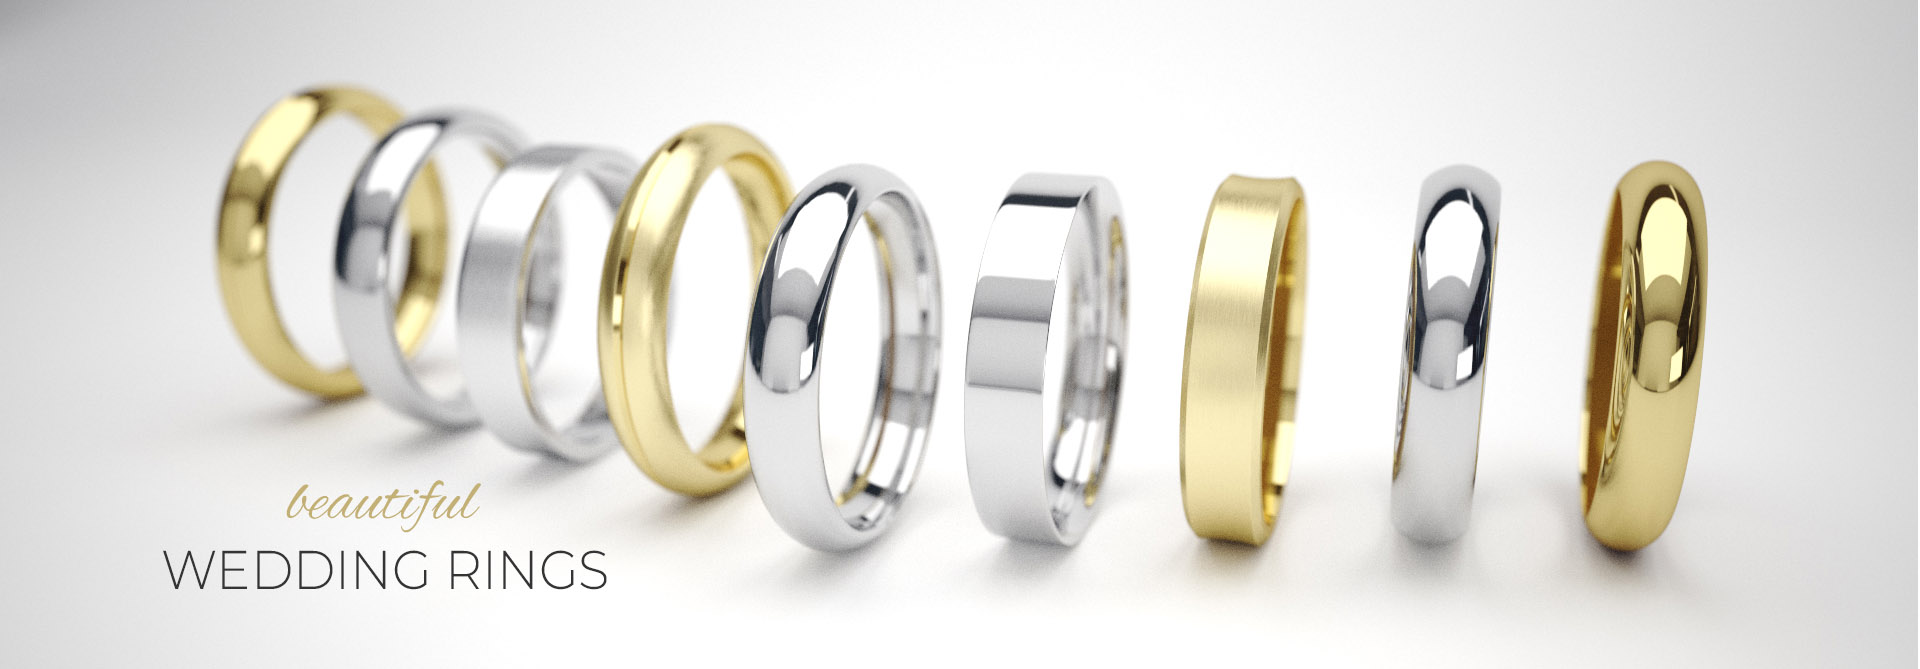 Wedding Bands V2